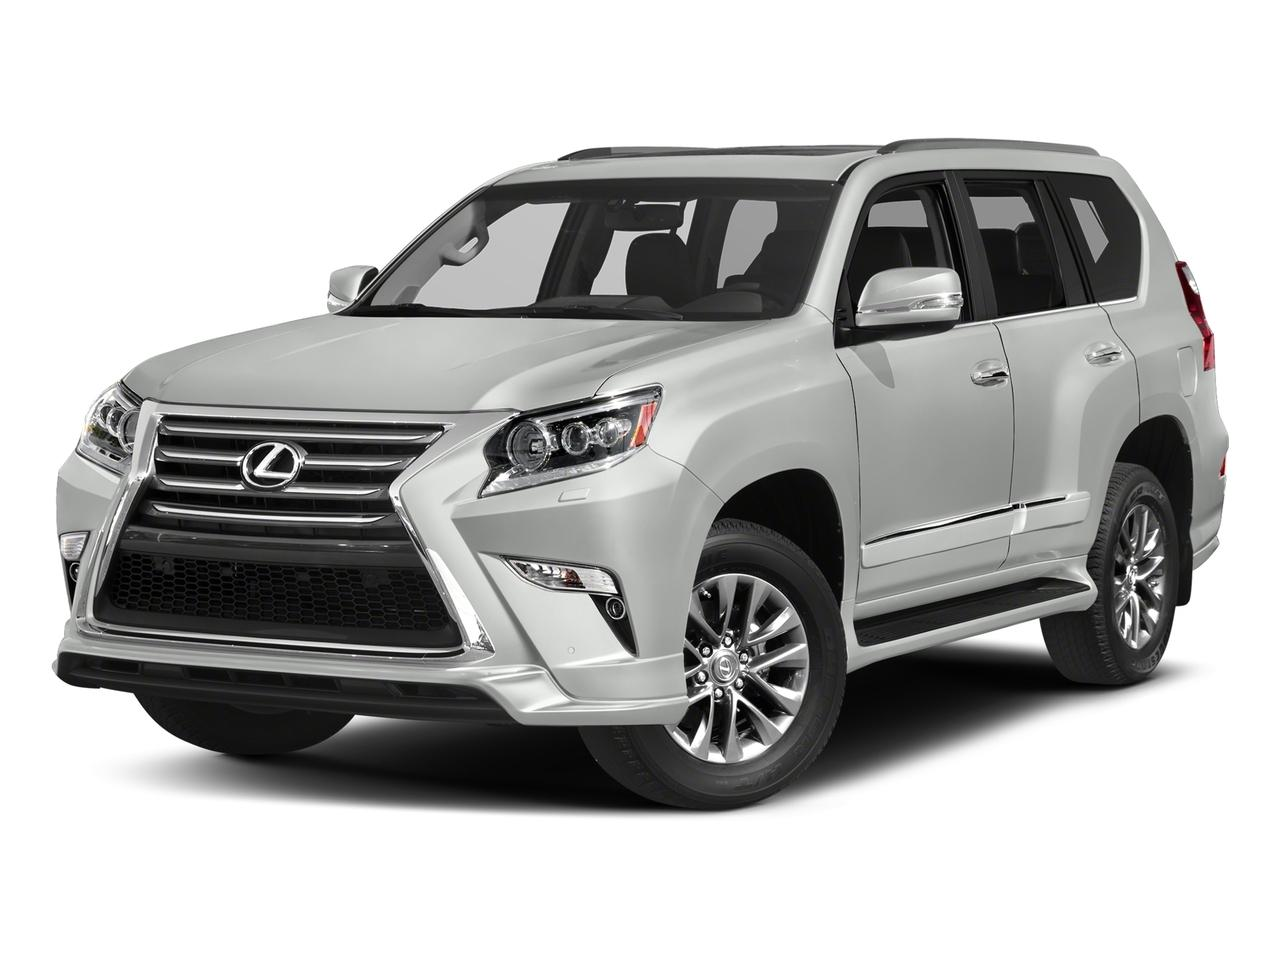 2017 Lexus GX 460 Vehicle Photo in Anchorage, AK 99515